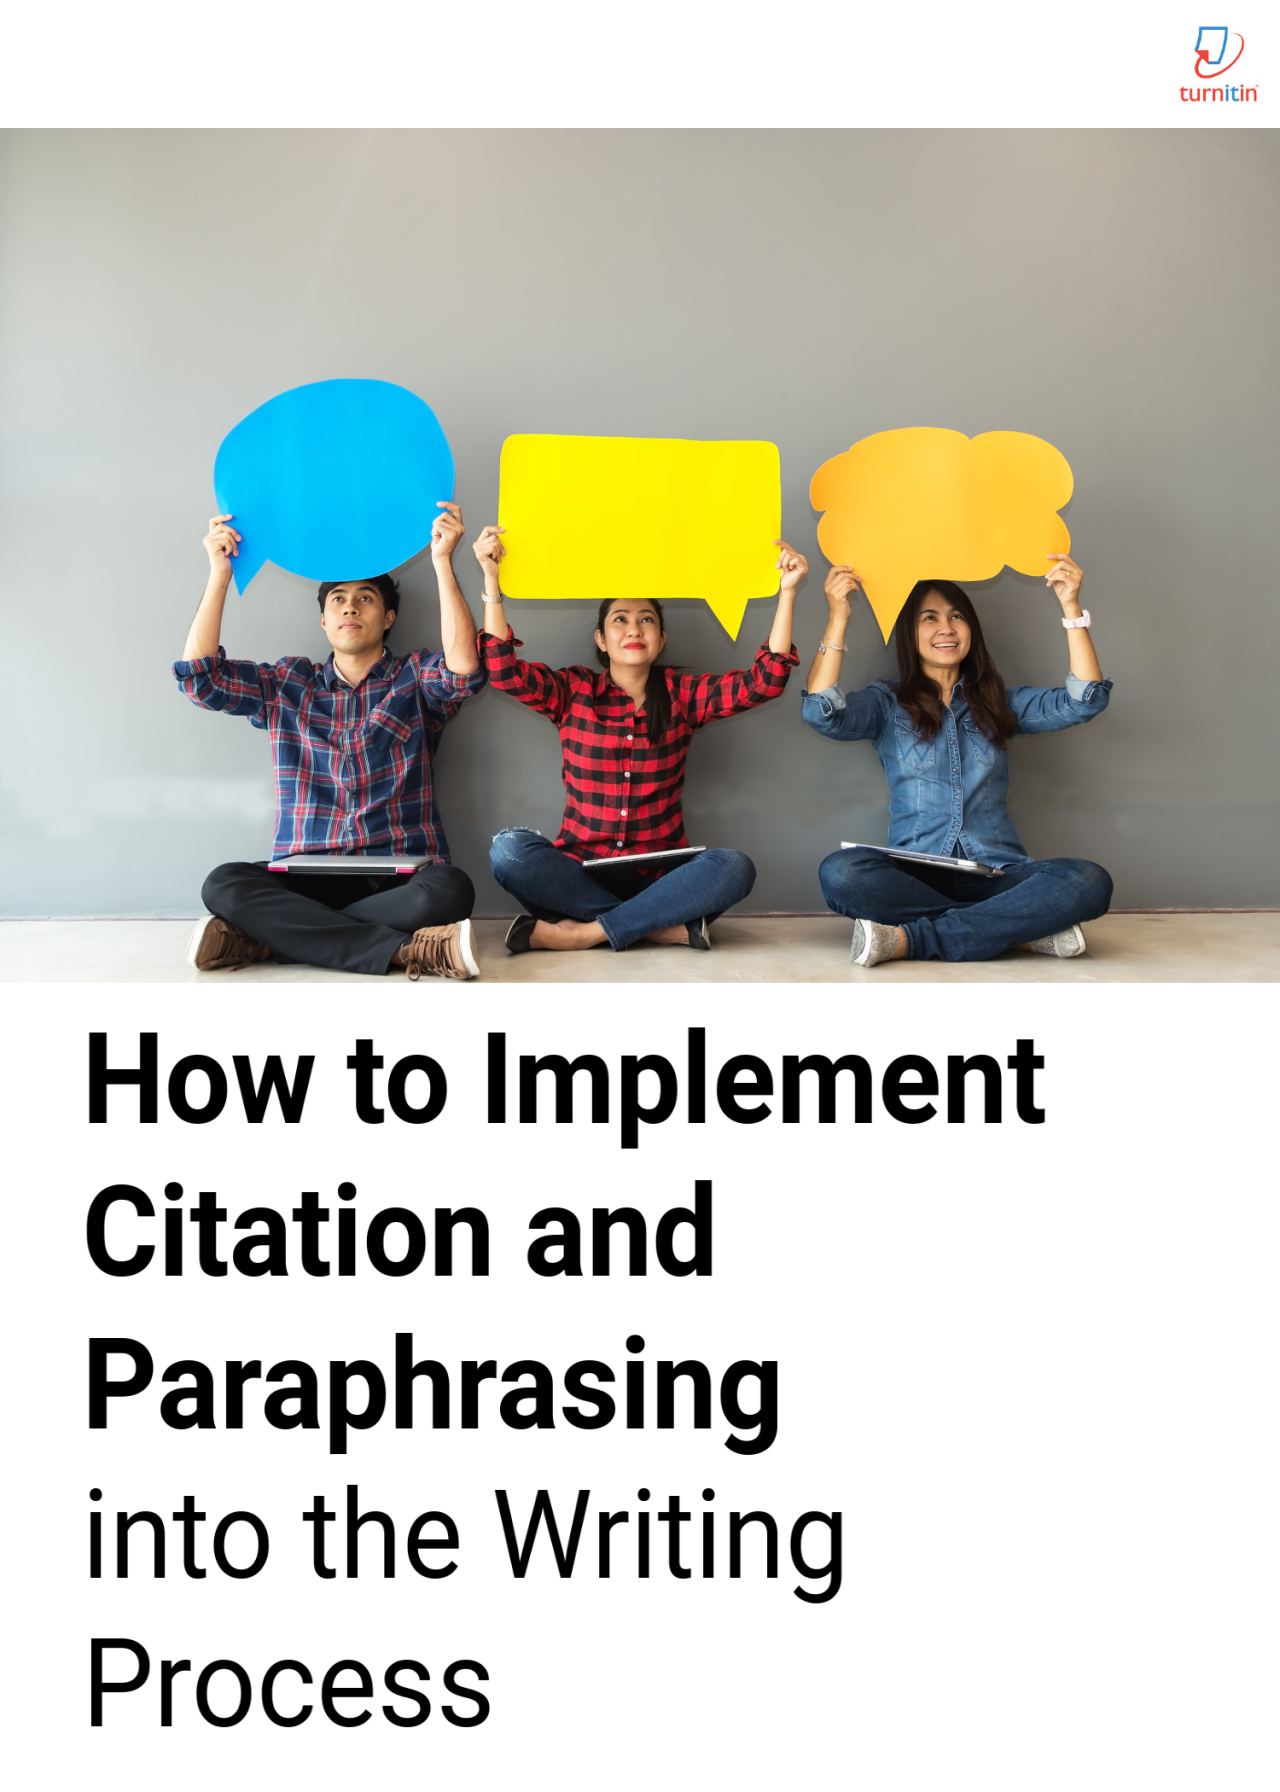 How To Implement Citation And Paraphrasing Into The Writing Proces Quotation Teacher Humor Act Exam Language